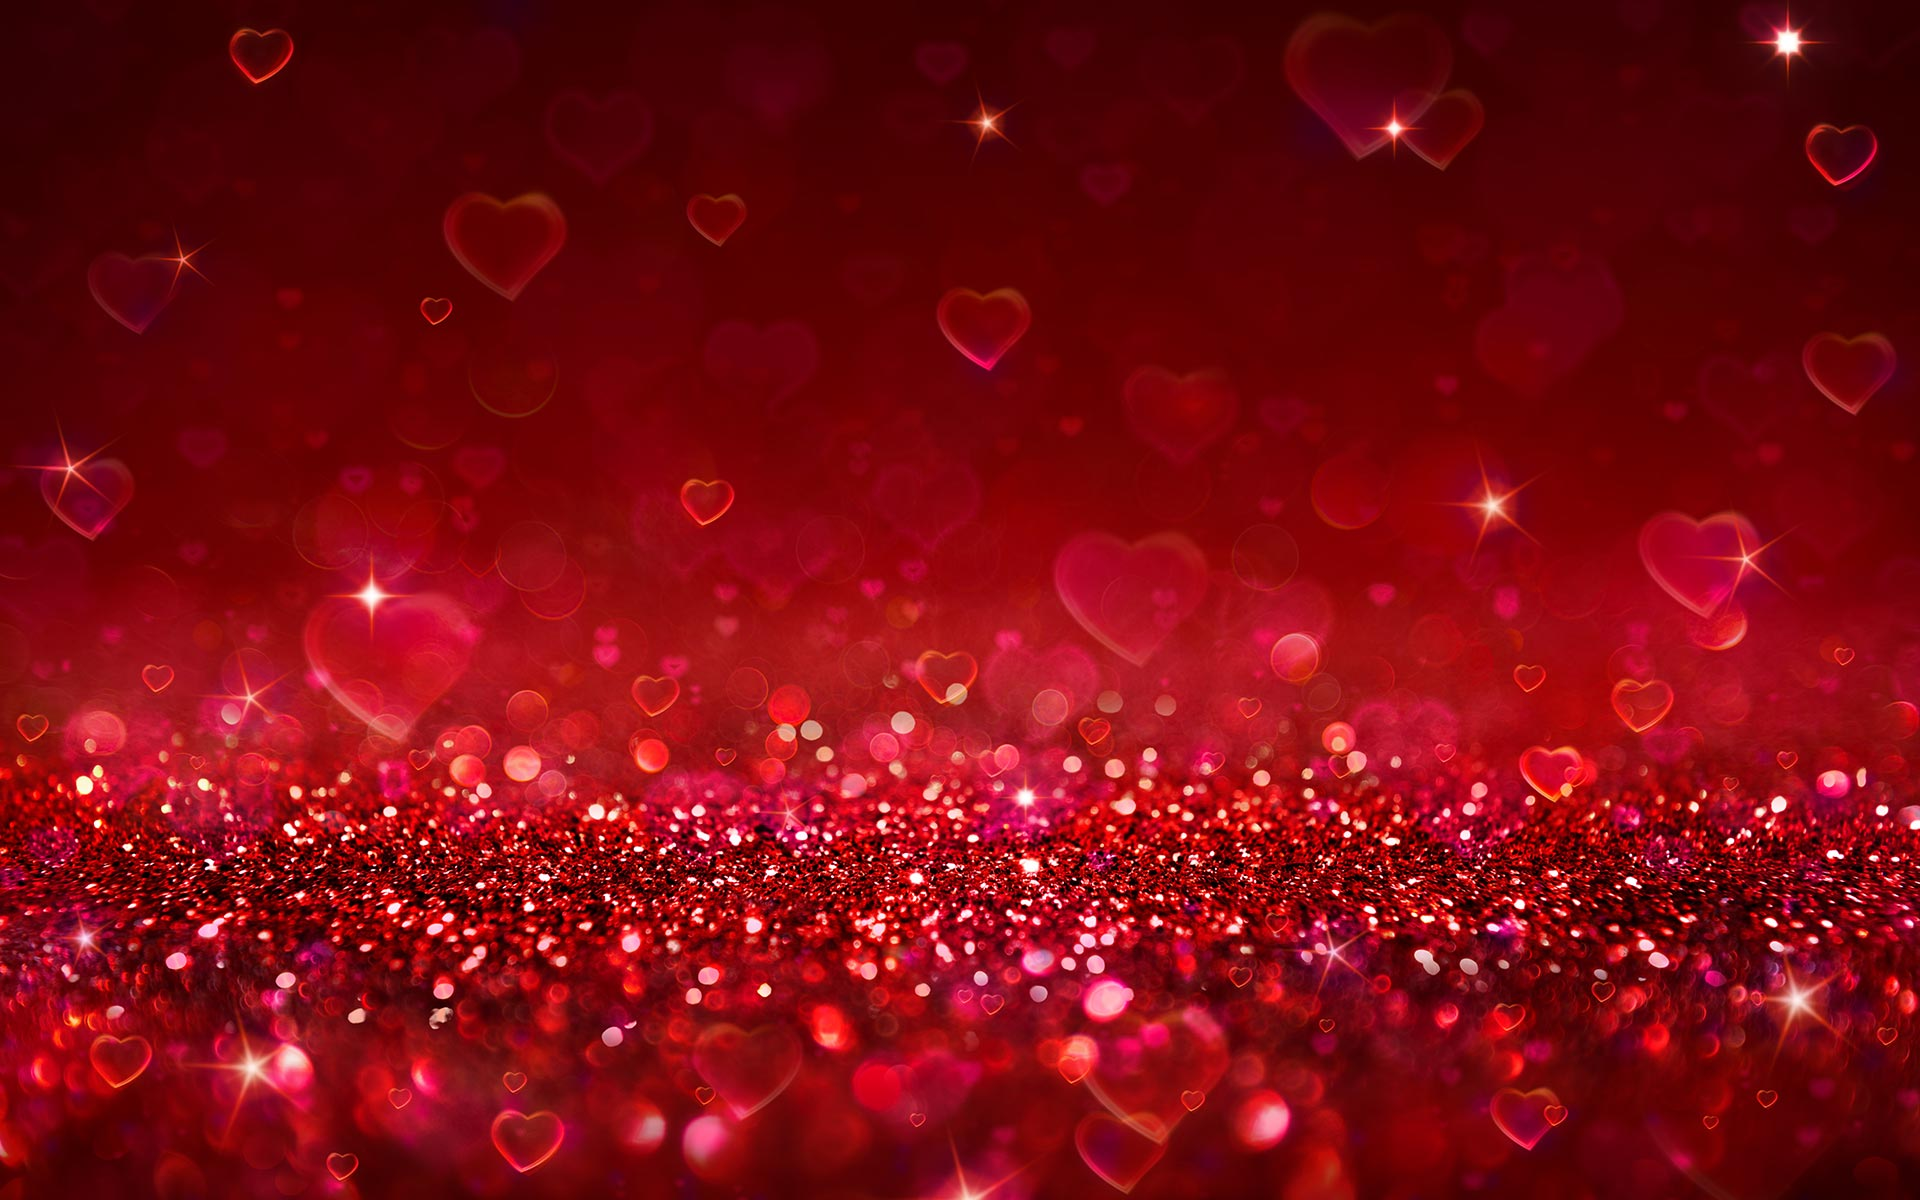 Love HD Wallpapers 12